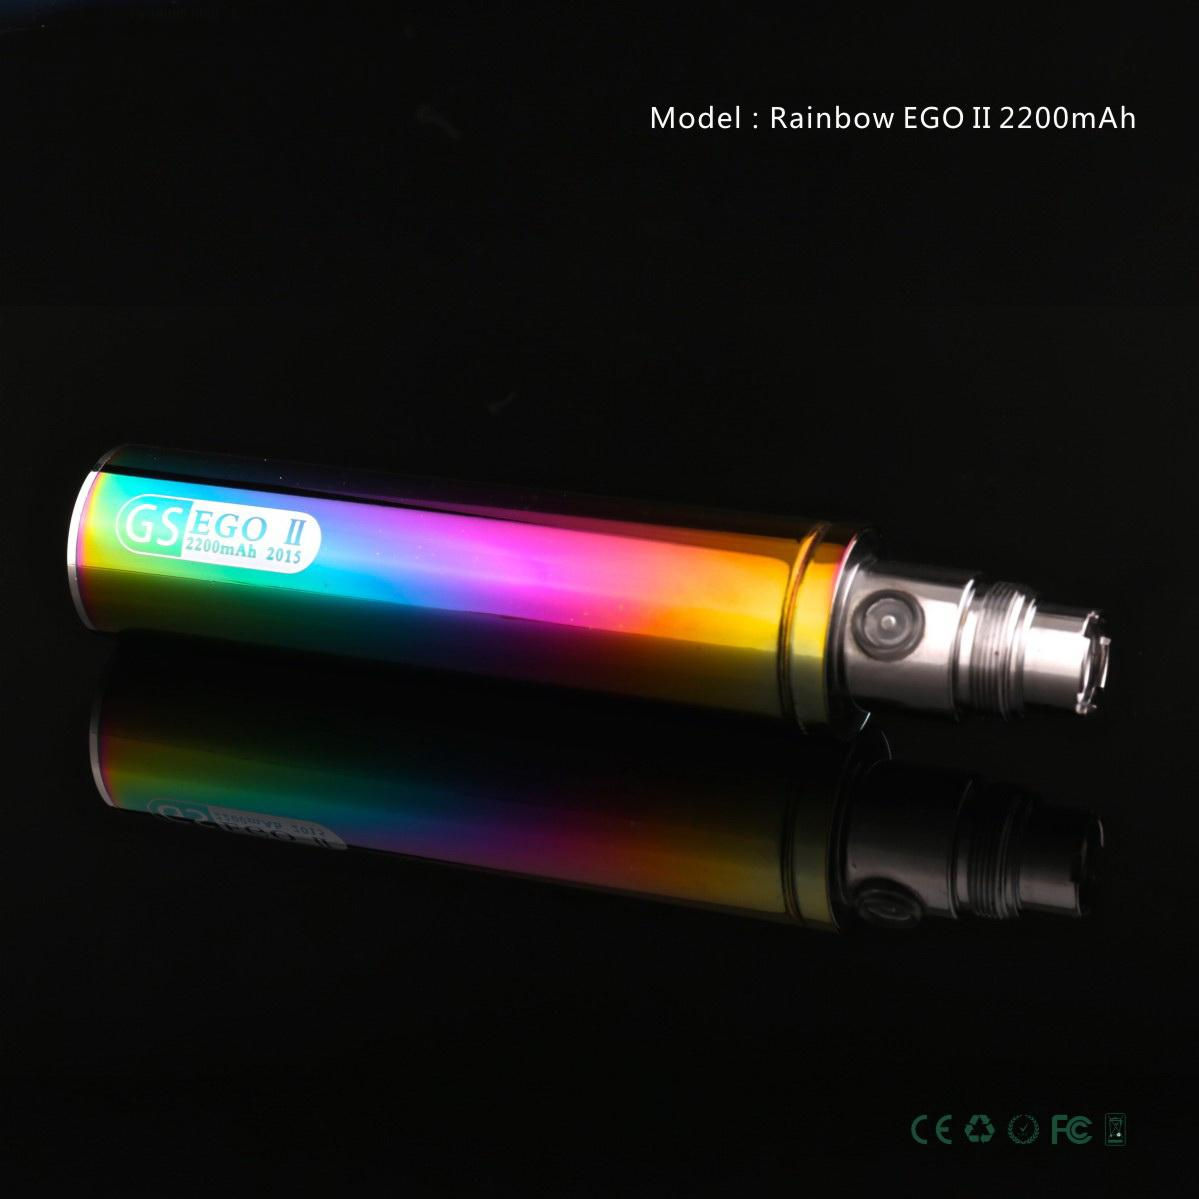 100% Original GS Ego II 2200mAh Battery Edition Rainbow Vaporizer Battery Rechargeable Batteries EGO 2 for H2S Atomizer